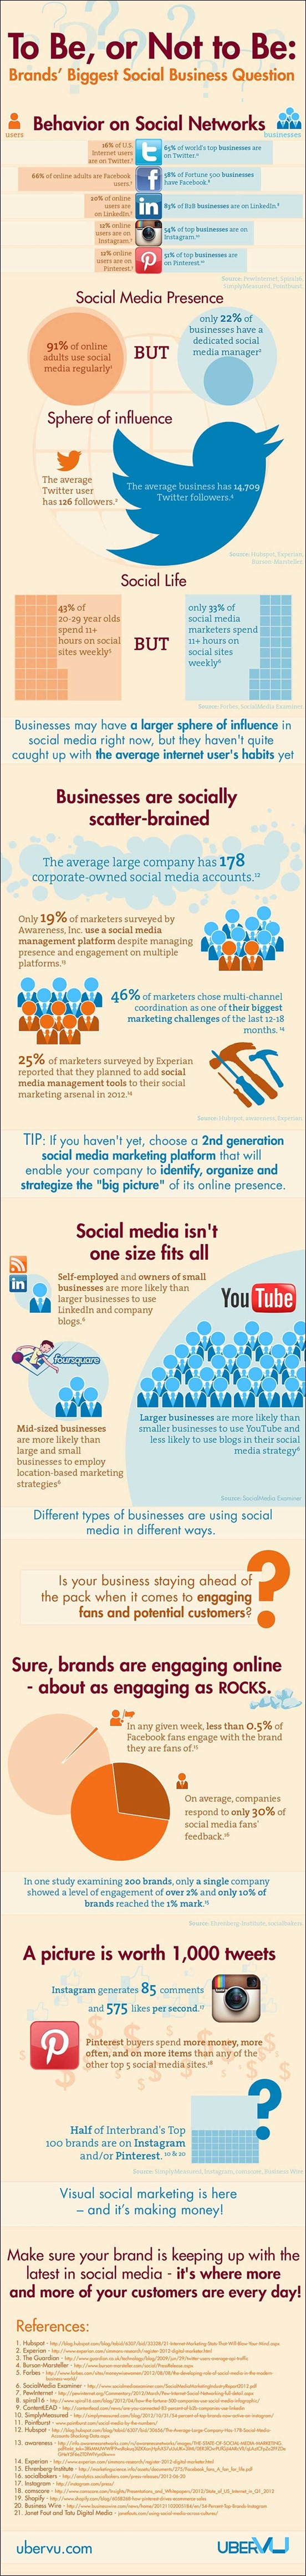 brands-are-still-failing-to-engage-with-customers-in-social-media